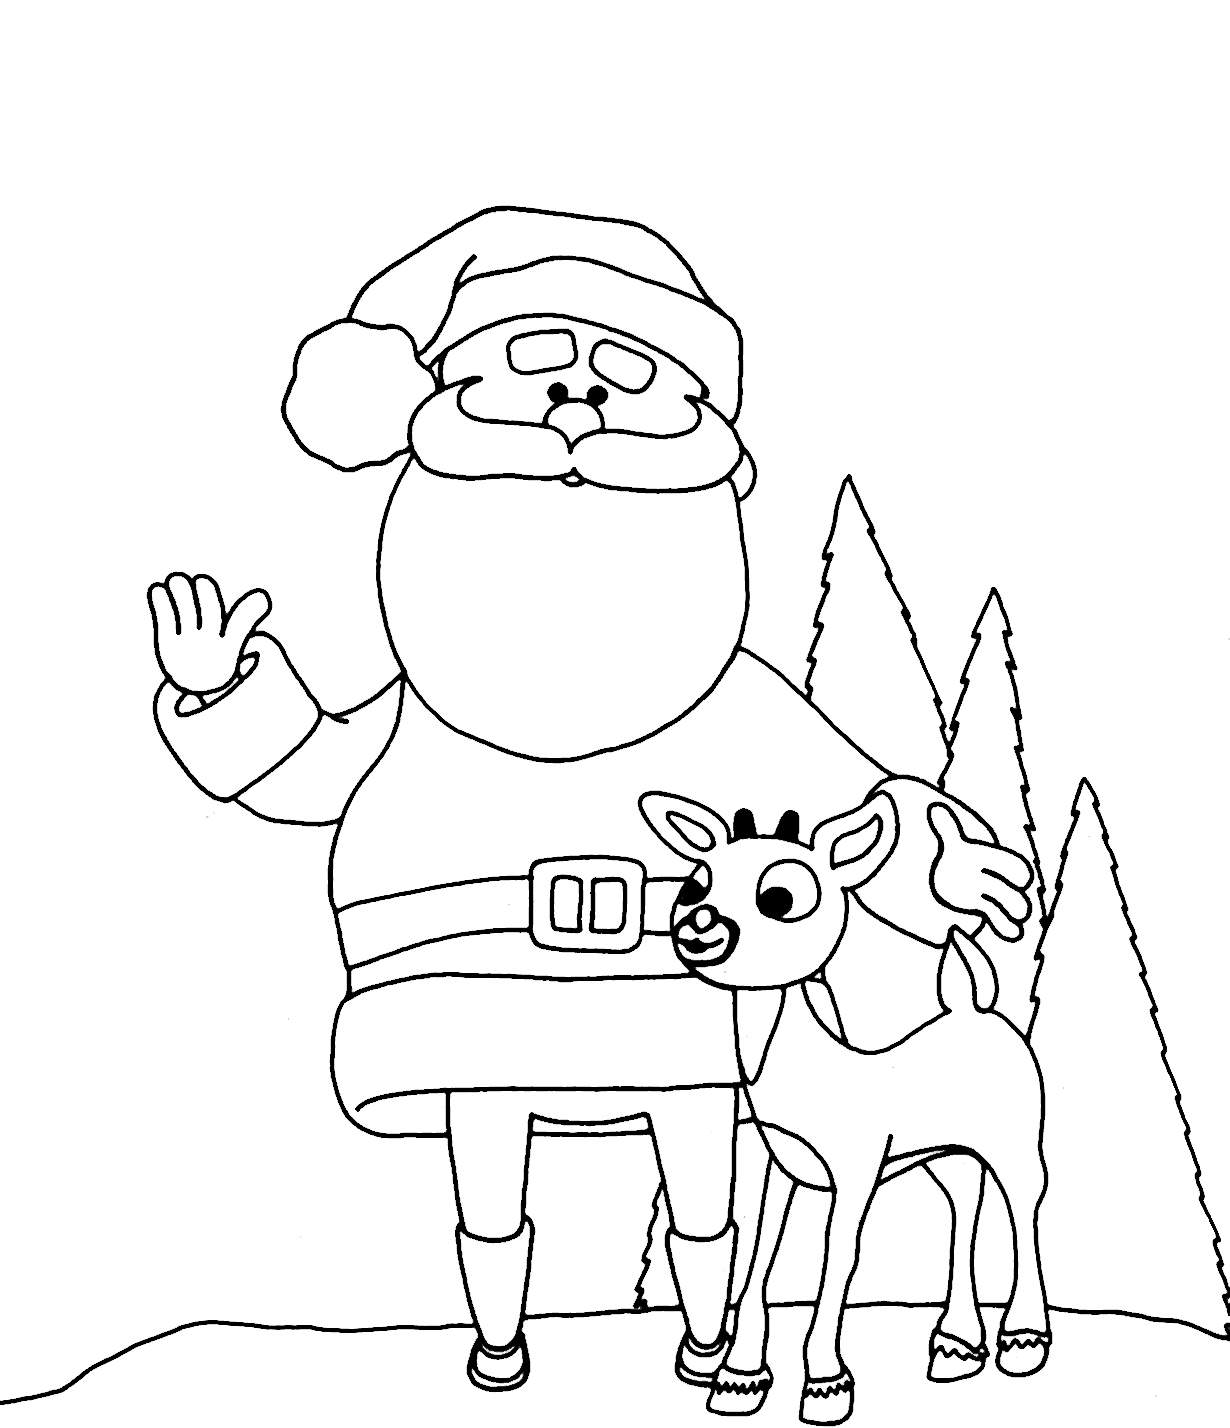 Santa Claus Coloring Book Pages With Free Printable For Kids